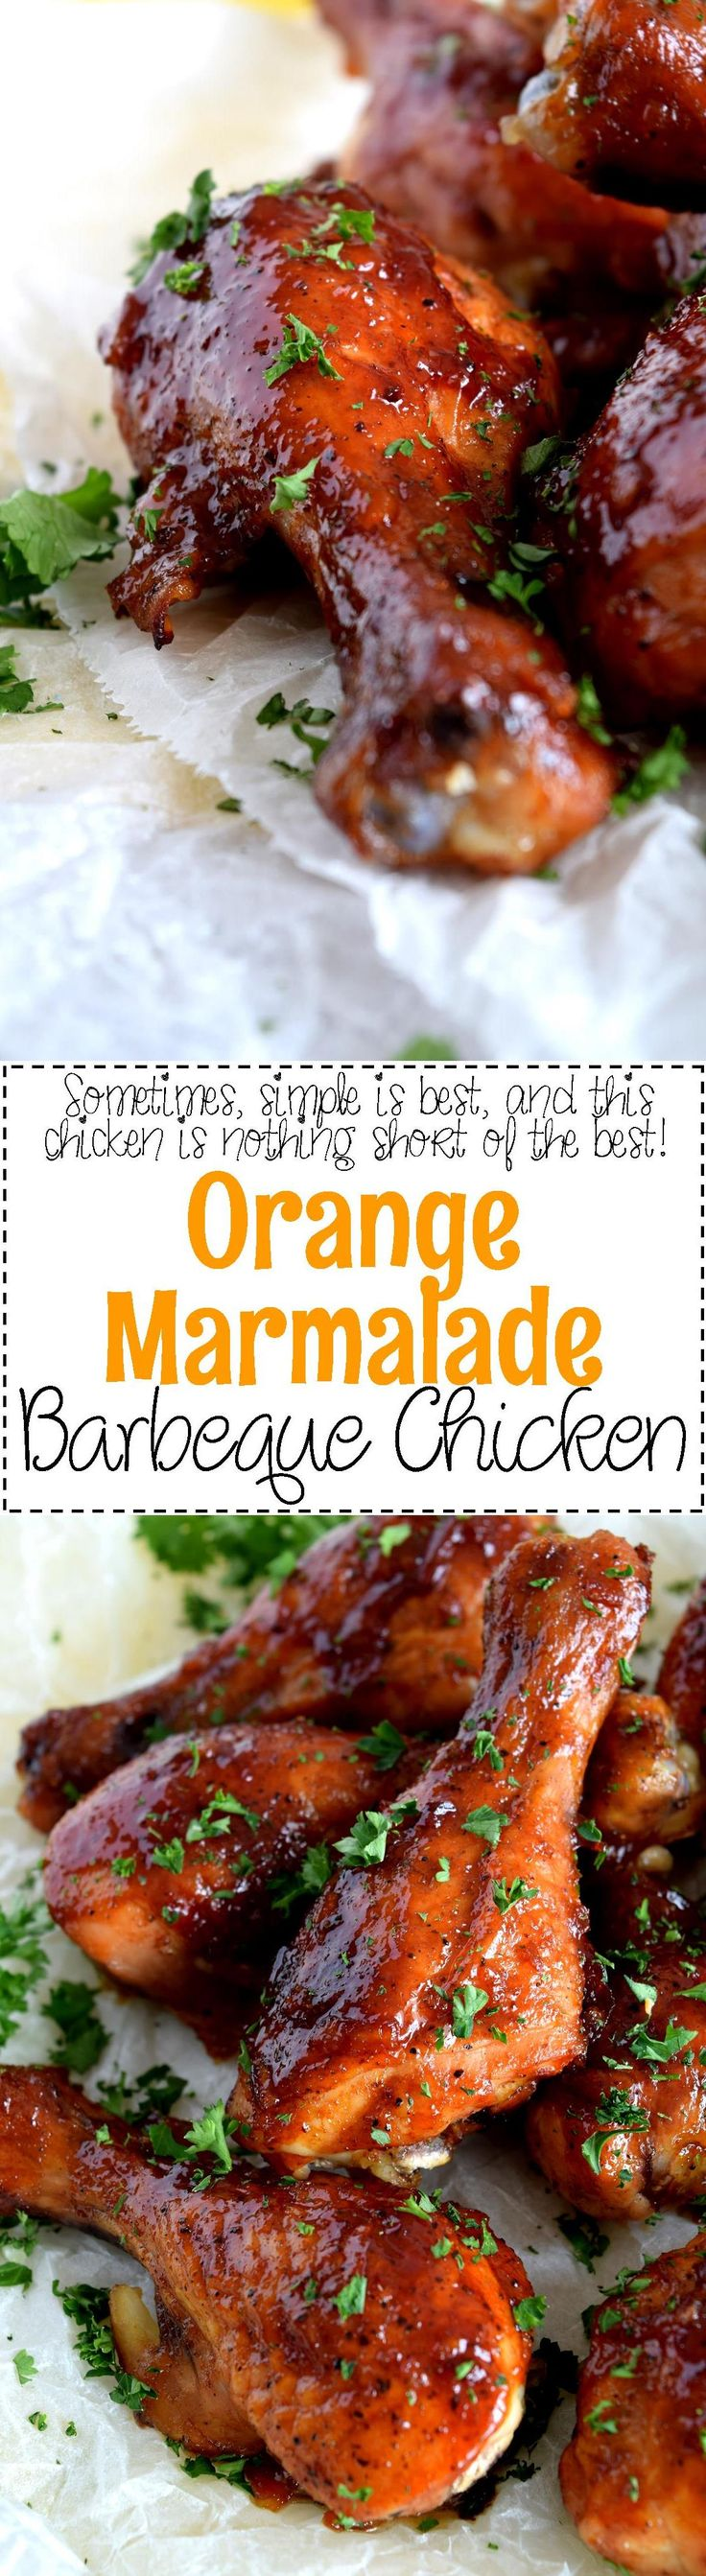 Orange Marmalade Barbeque Chicken - A deliciously easy and budget friendly dish which uses only three ingredients. Orange Marmalade Barbeque Chicken is about to make your dinnertime rush so much more relaxed and yummy!